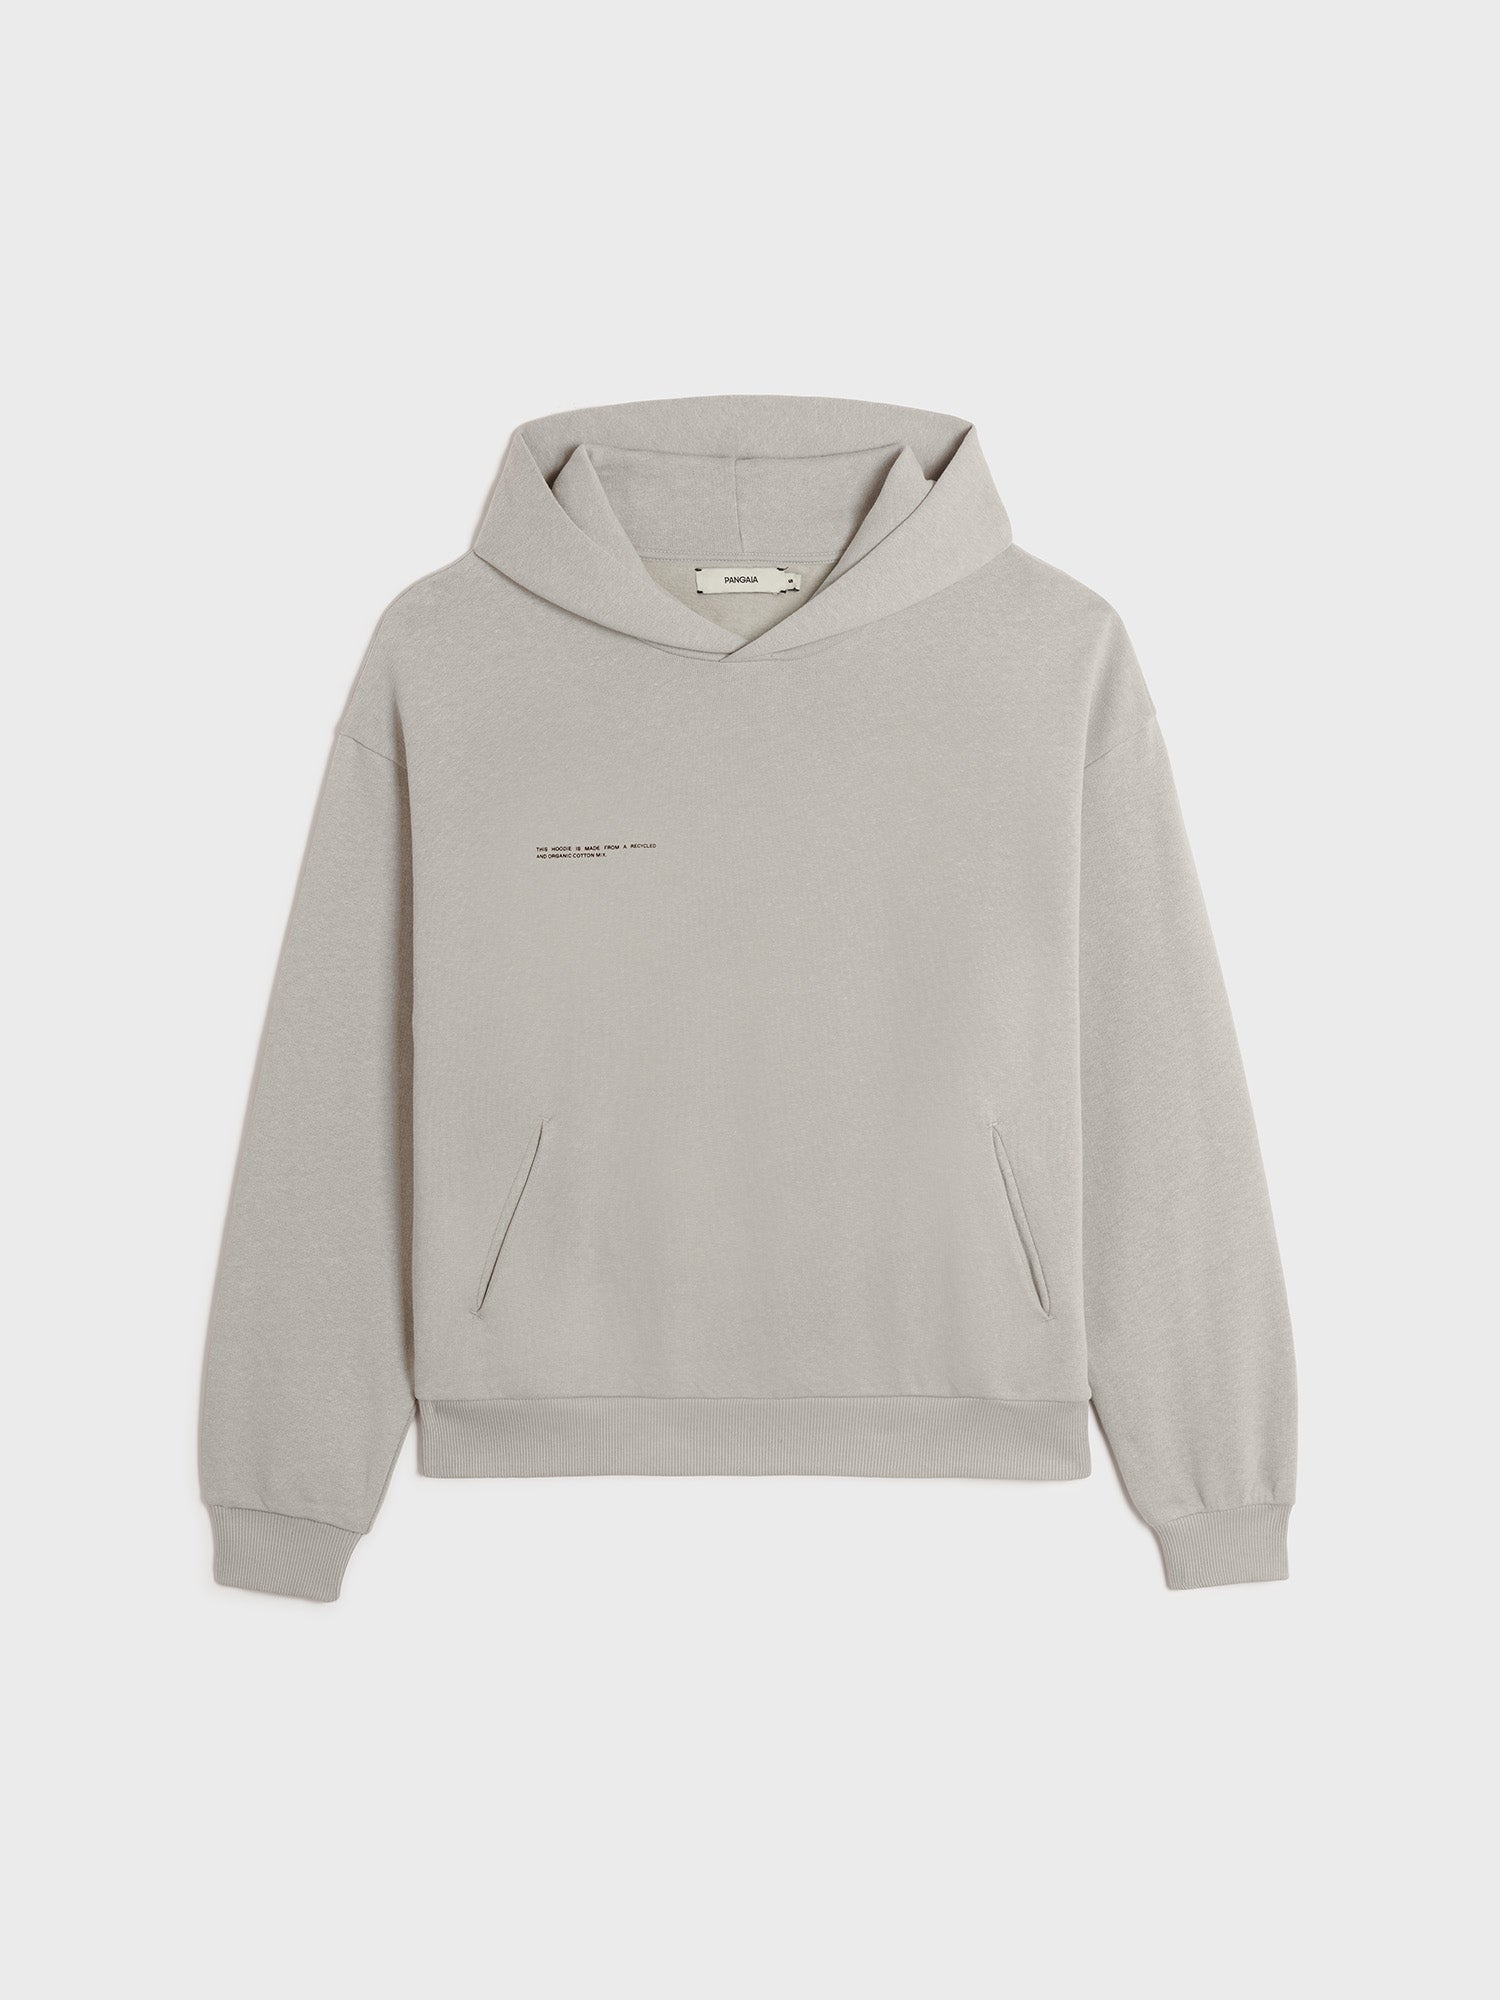 Heavyweight Recycled Cotton Hoodie